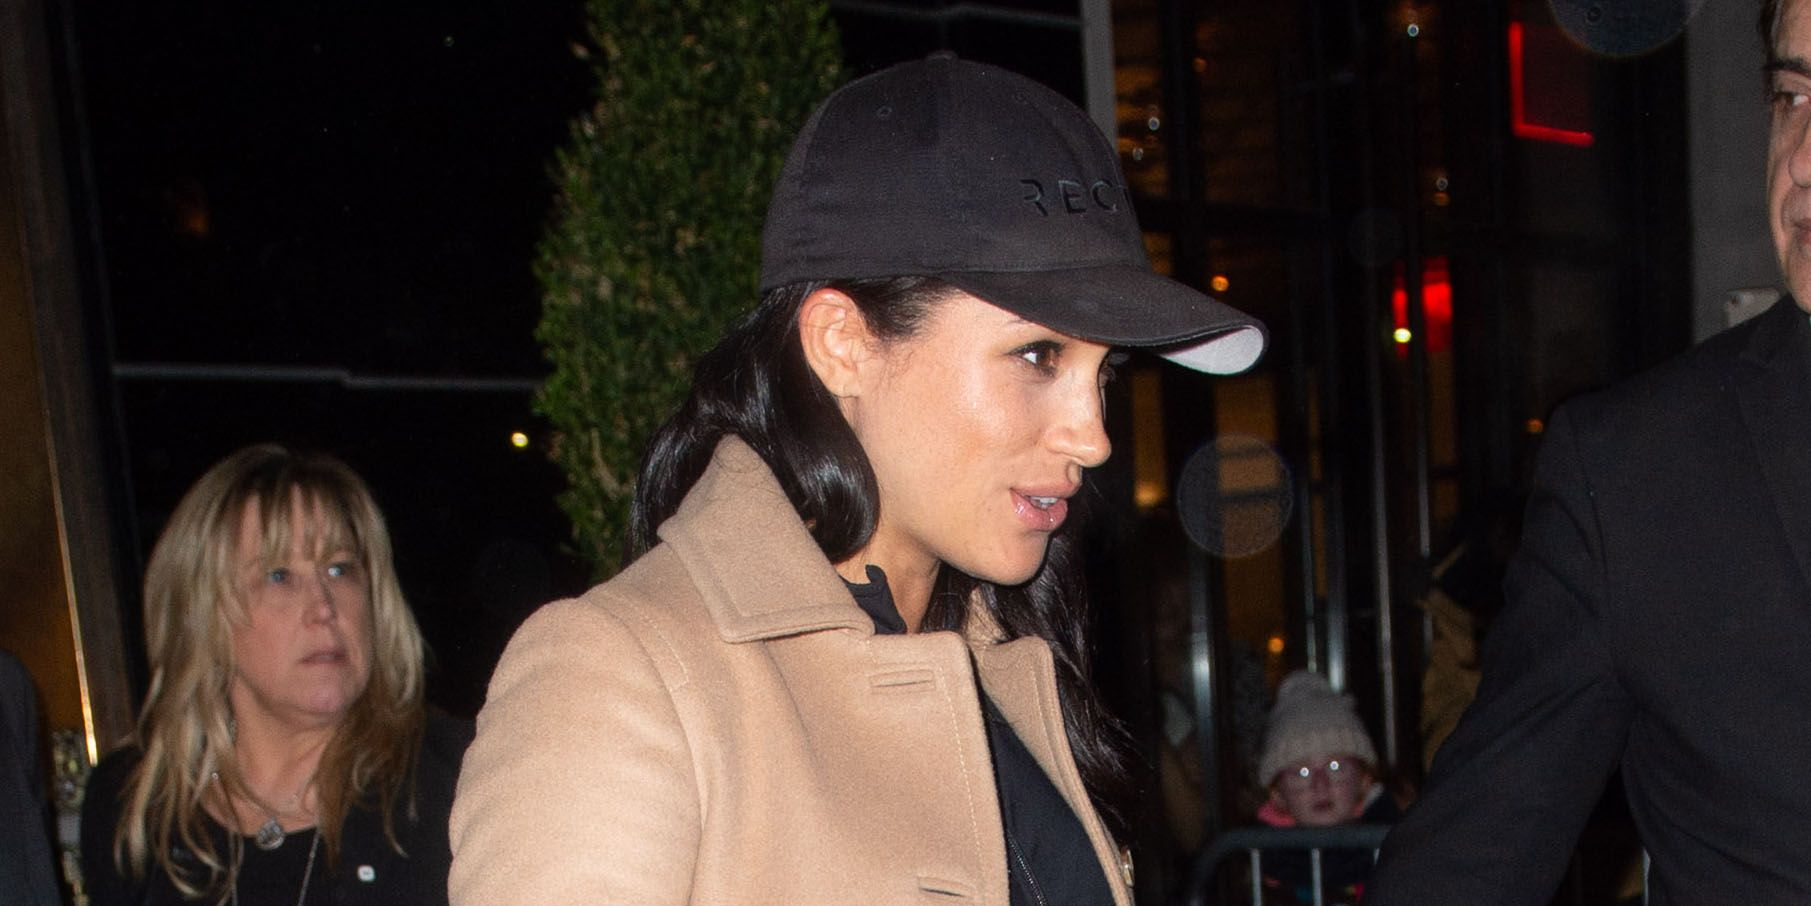 Meghan Markle Heads to the Airport in a Camel-Colored Coat and Casual Black Leggings